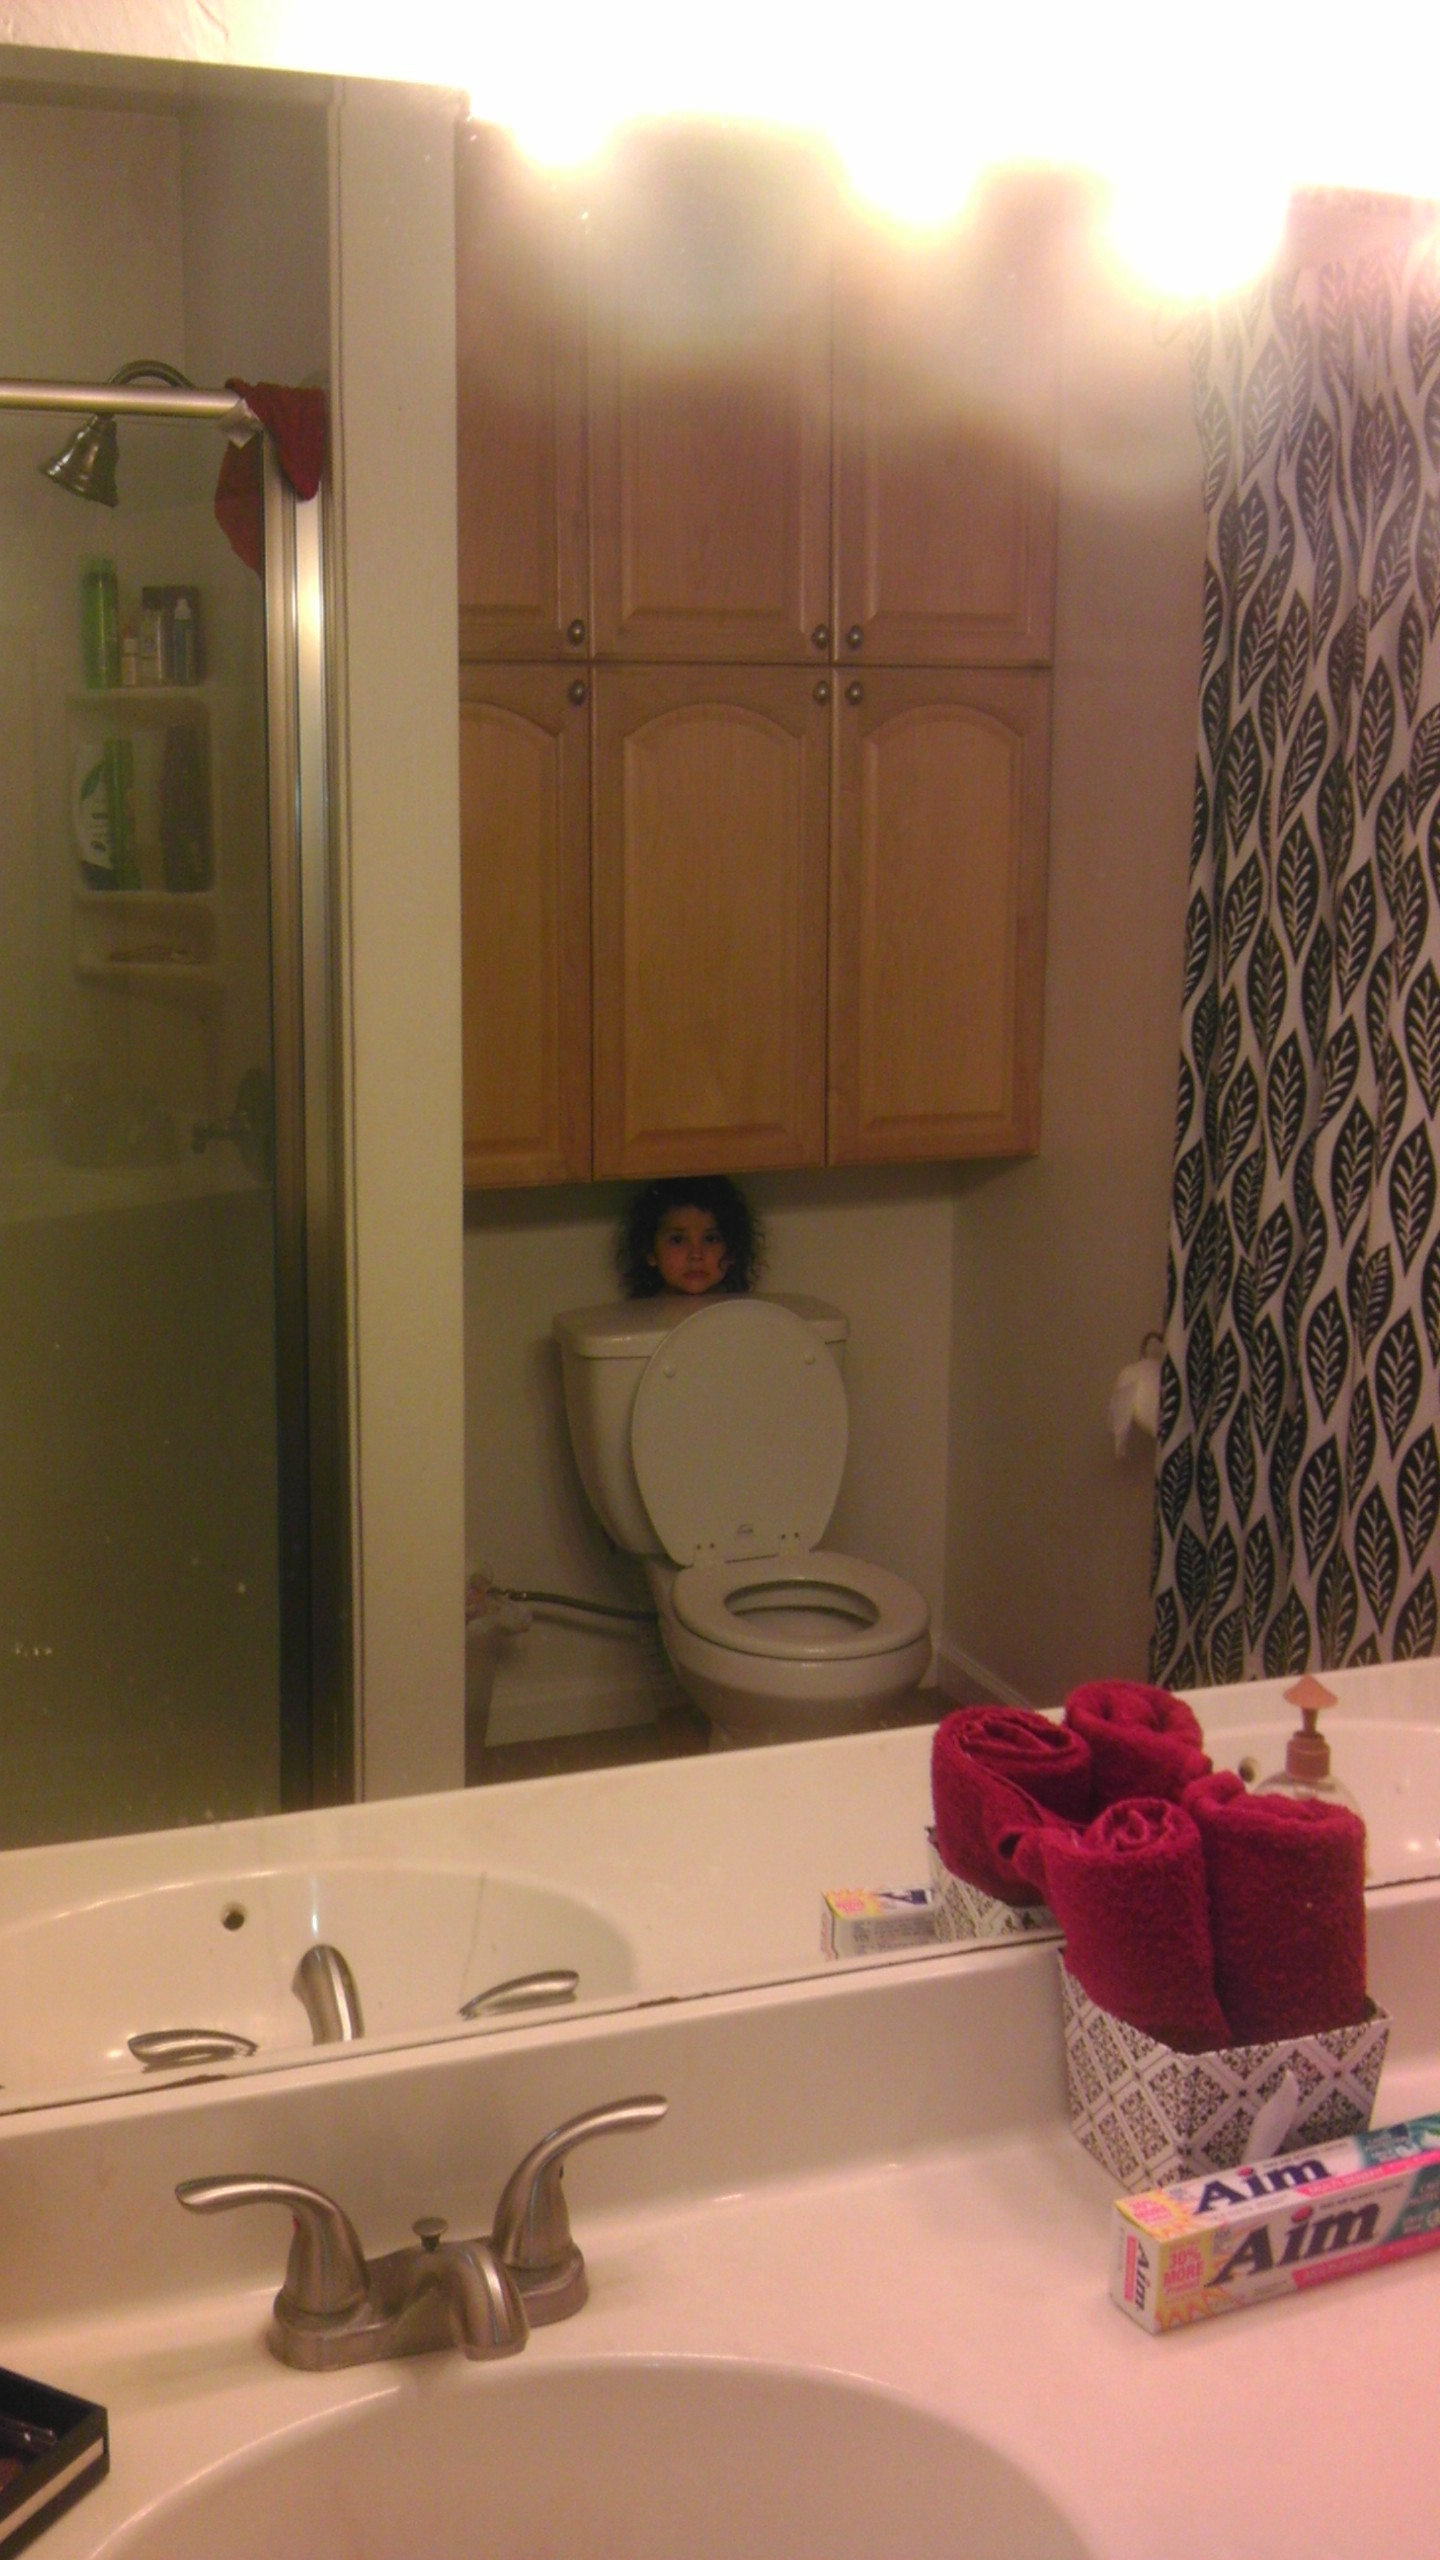 Little girl hiding behind a toilet